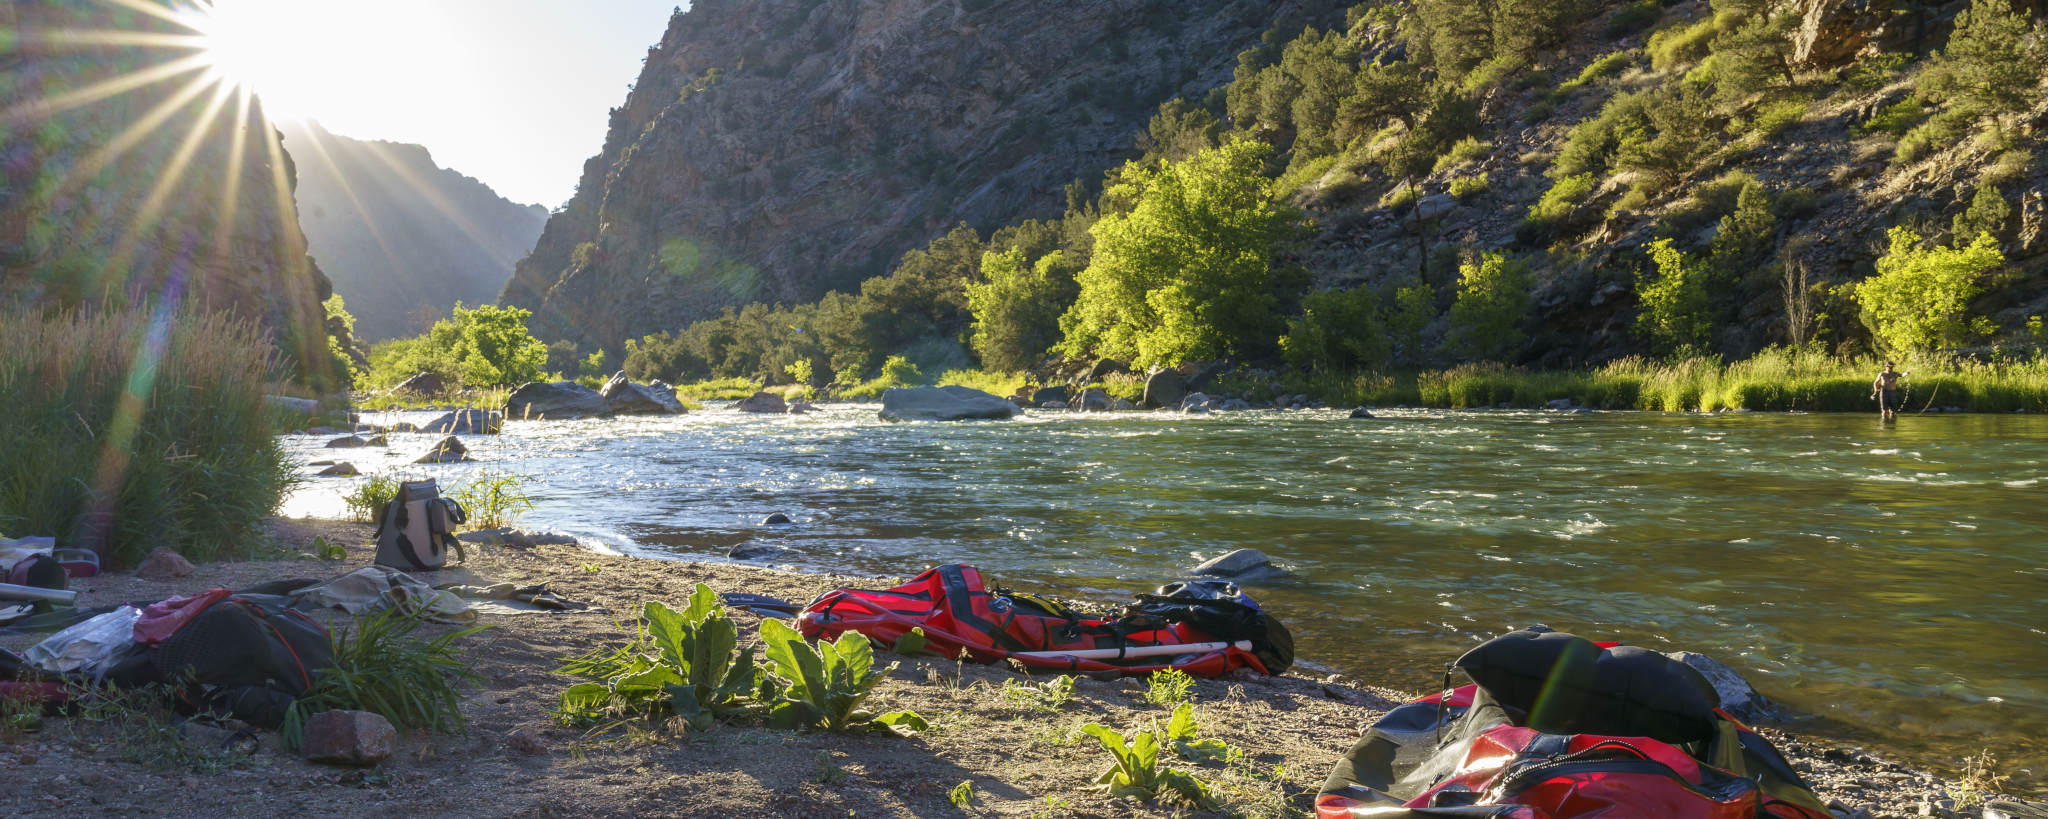 Gunnison River Bank with packraft Sunset Fly Fishing